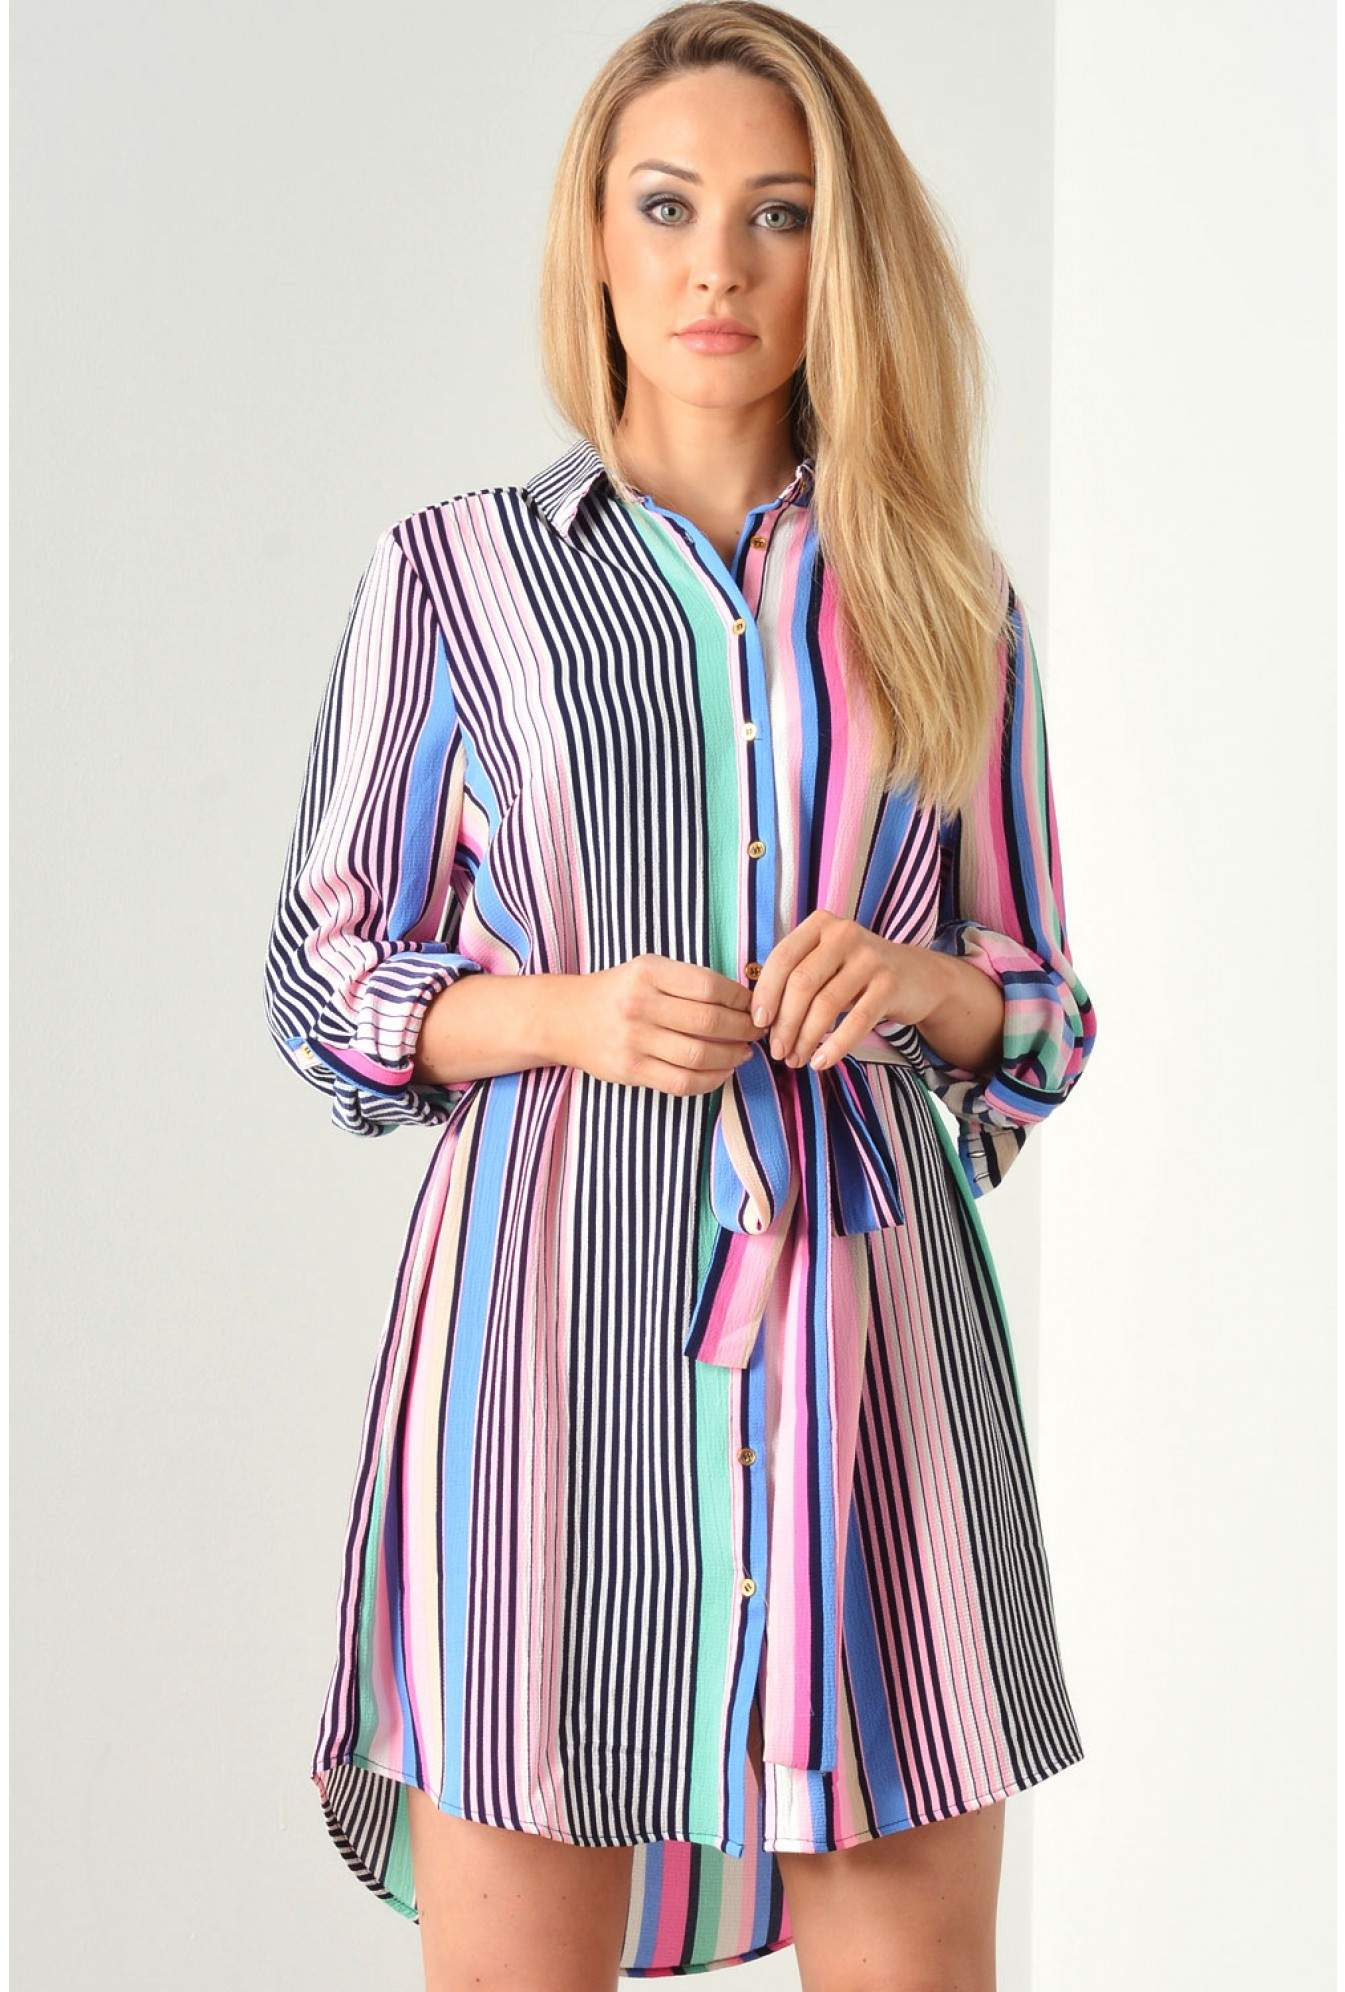 9139adbec252a Kiah Juniper Striped Shirt Dress in Pink | iCLOTHING